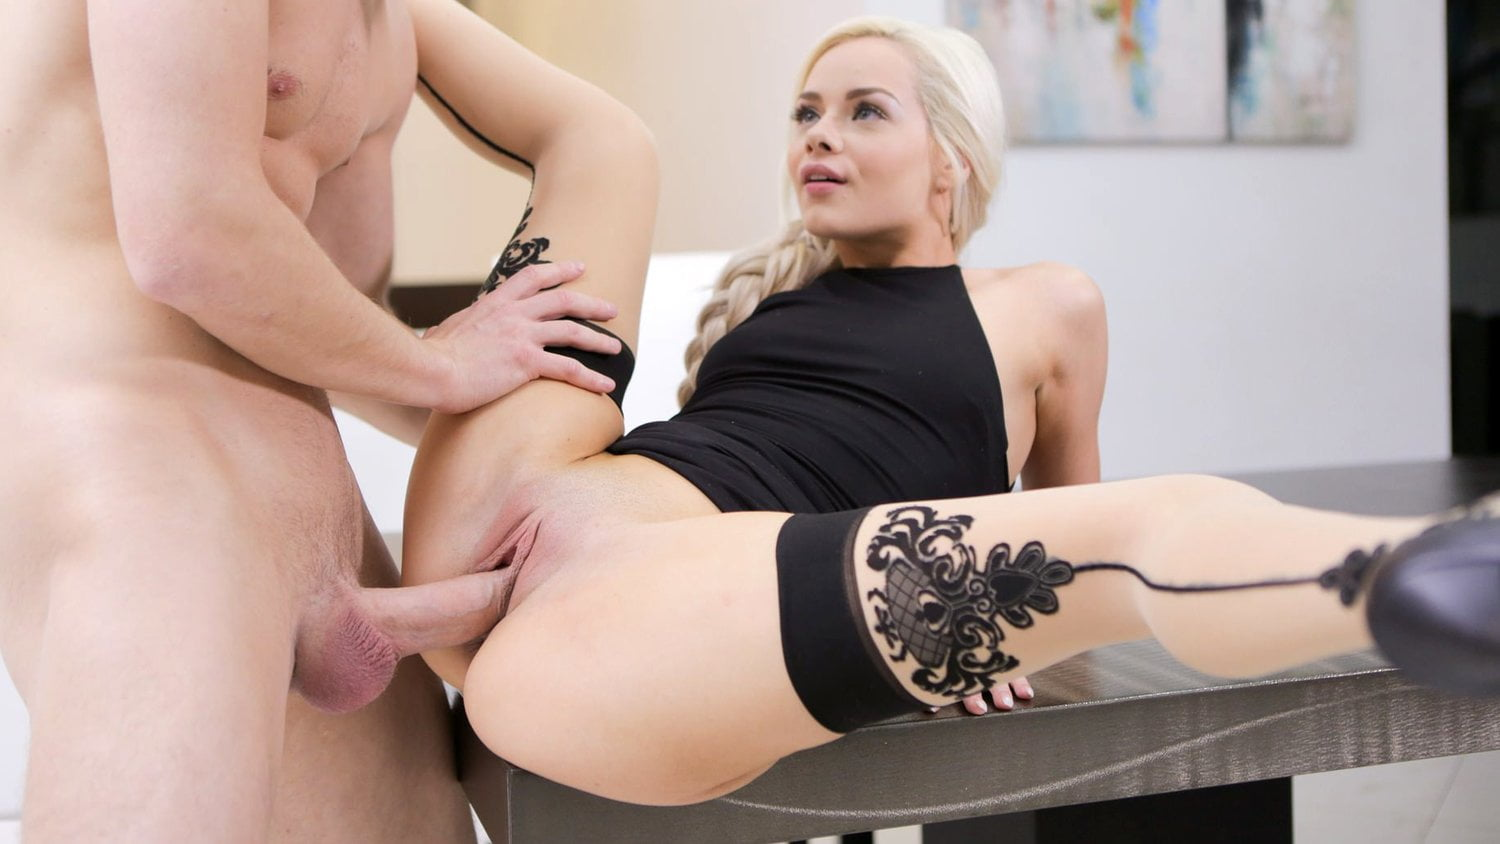 XXX photo First time muscle dyke spank